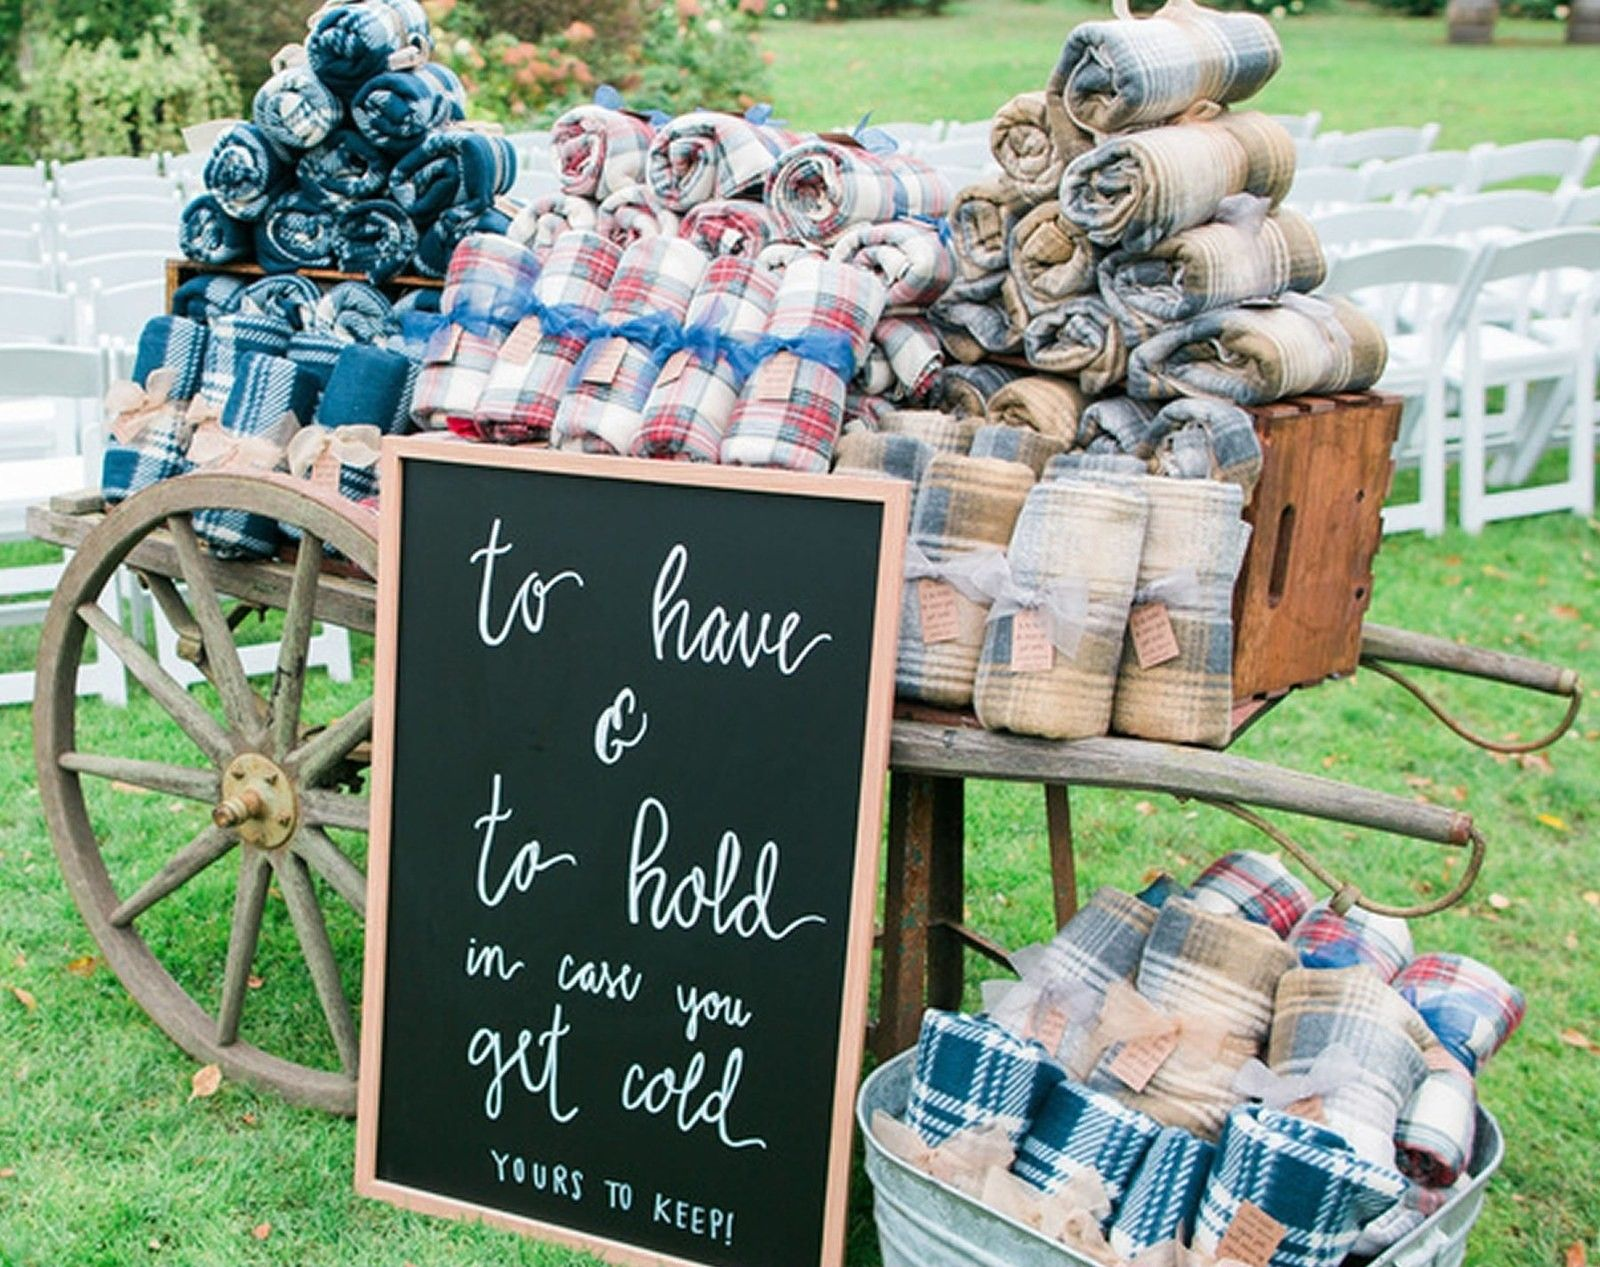 24 Cheap And Clever Wedding Favors You Can Buy In Bulk Wedding Favors Fall Wedding Gifts For Guests Creative Wedding Favors